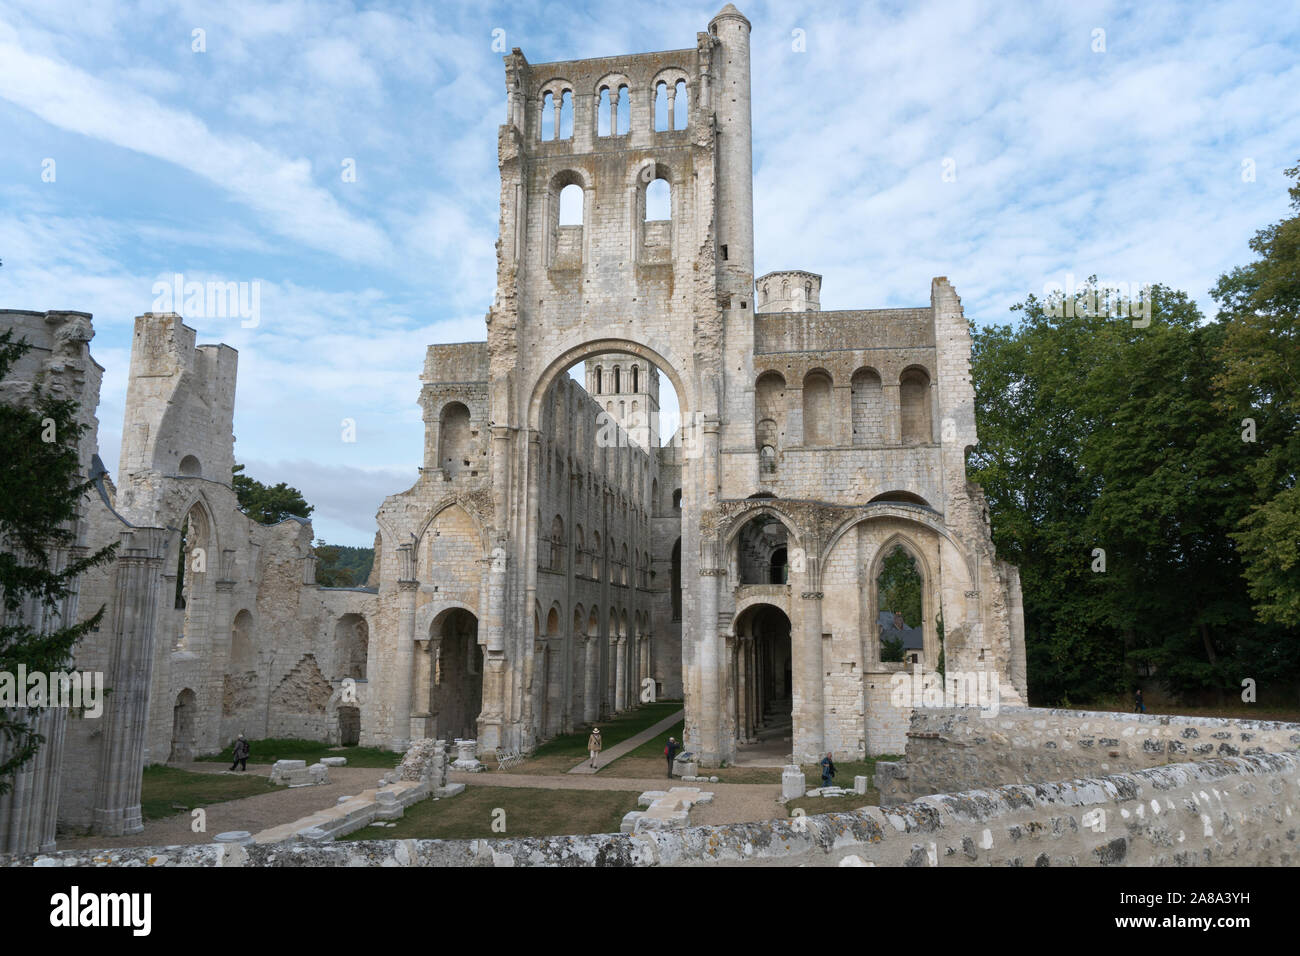 Jumieges, Normandy / France - 13 August 2019: the old abbey and Benedictine monastery at Jumieges in Normandy in France Stock Photo